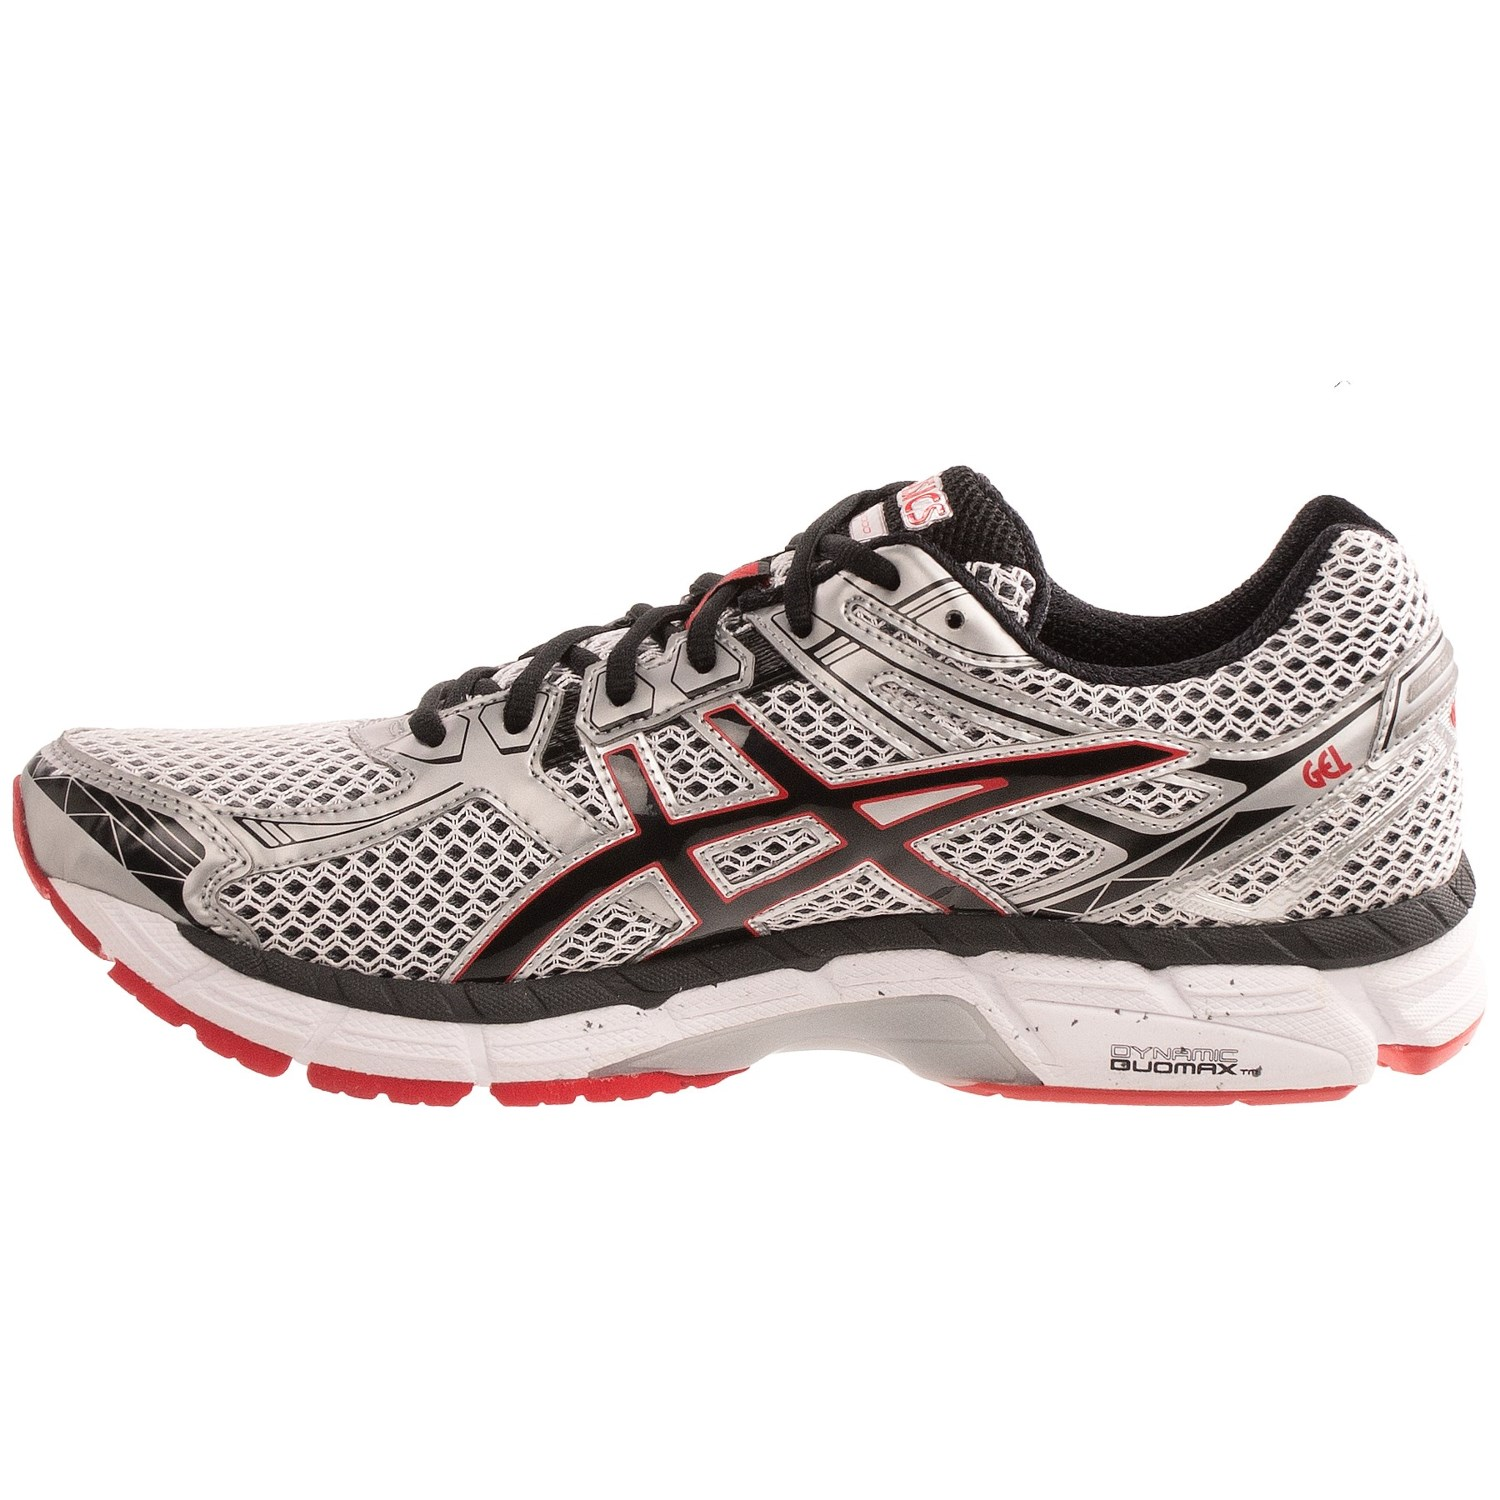 Asics Mens Running Shoes Clearance Australia